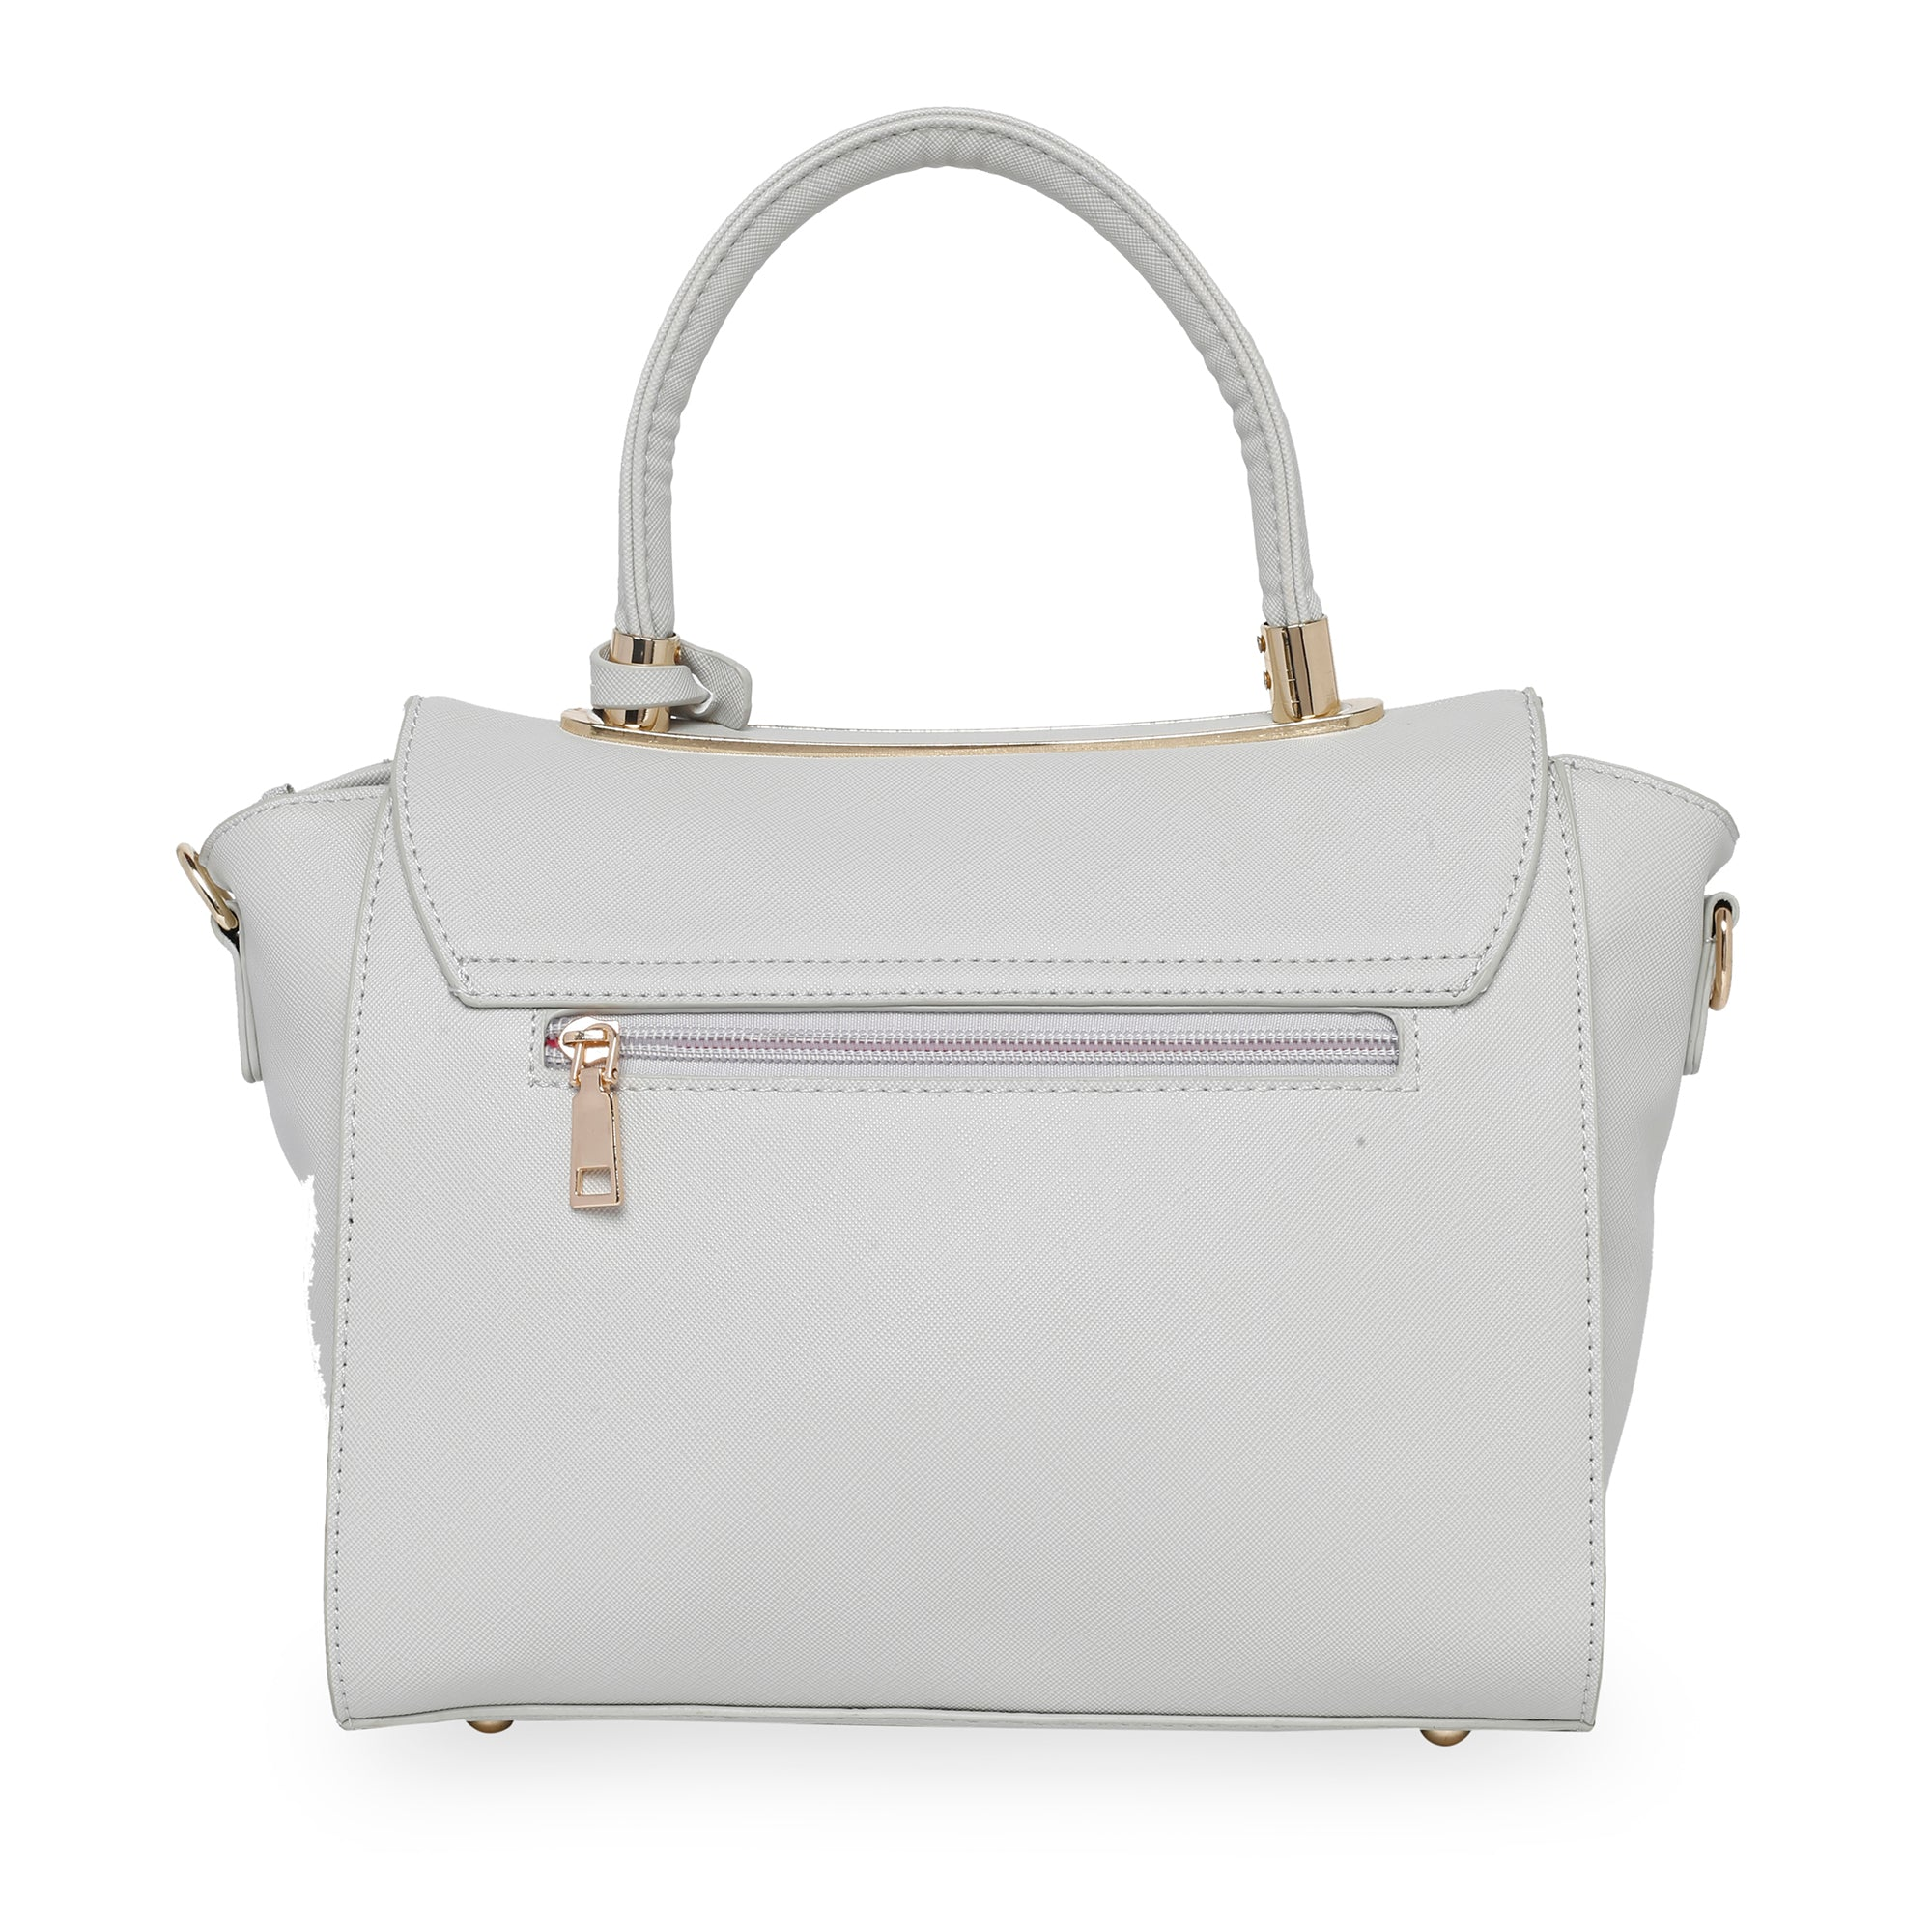 Globus Grey Nude & White Hand Bag-5